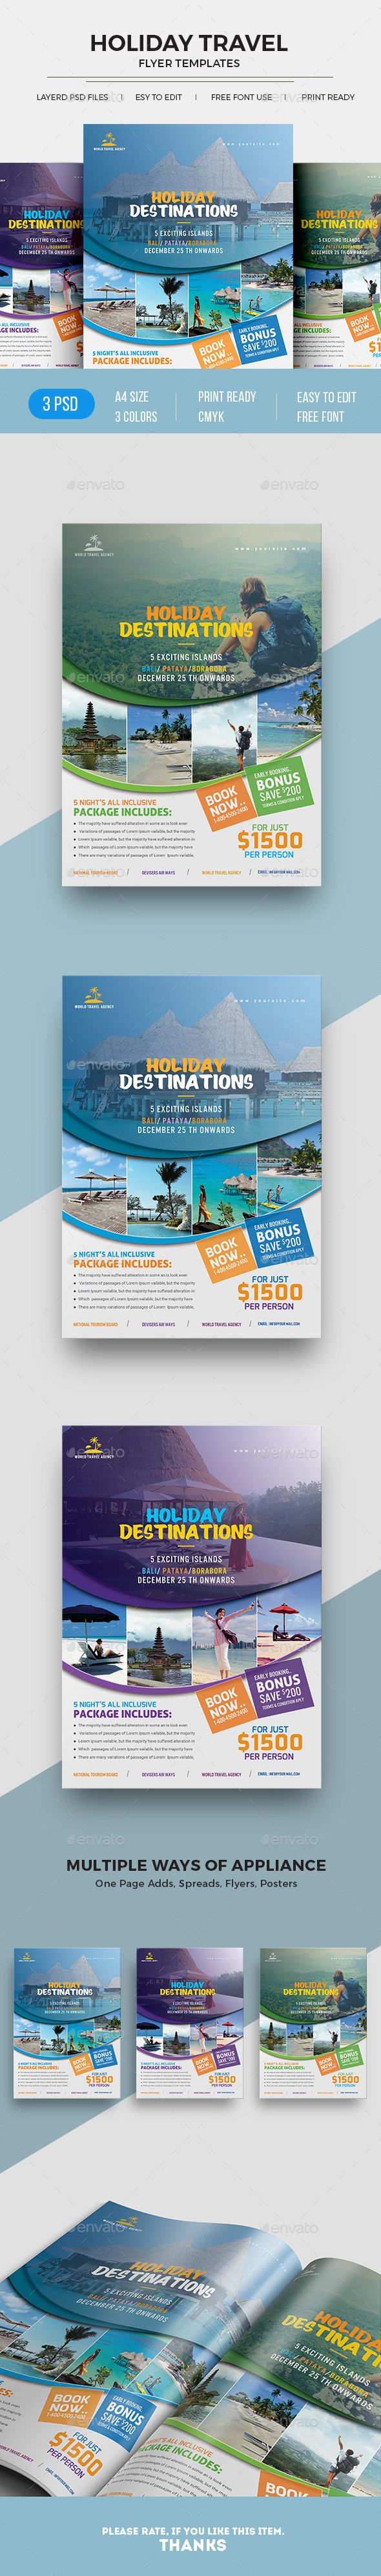 Travel Flyer - Commerce Flyers Download here: https://graphicriver.net/item/travel-flyer/19879557?ref=classicdesignp